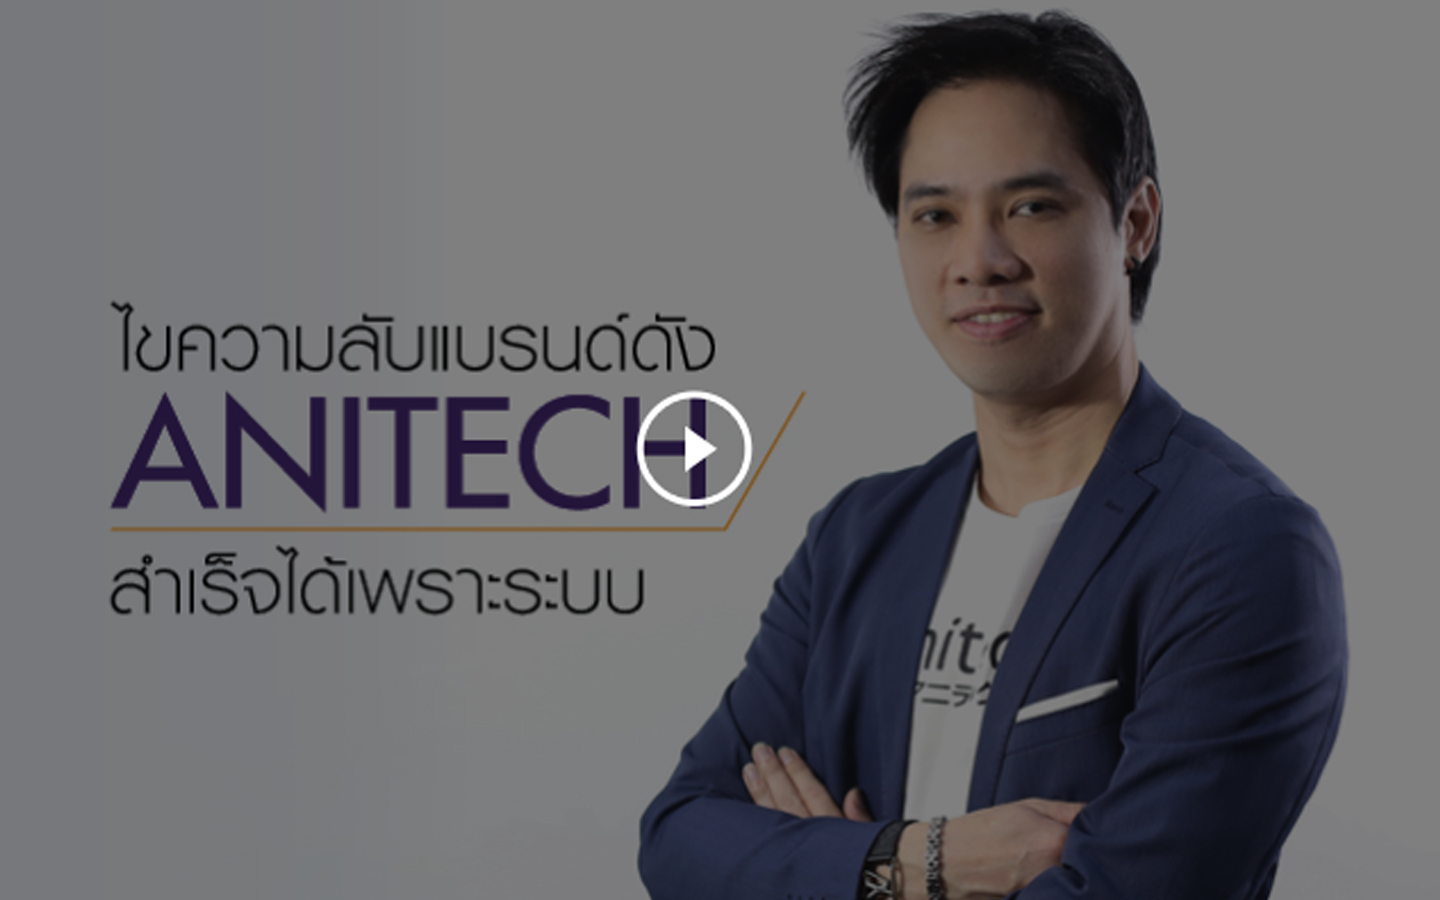 Expose the secret of the famous brand Anitech can be achieved because the system